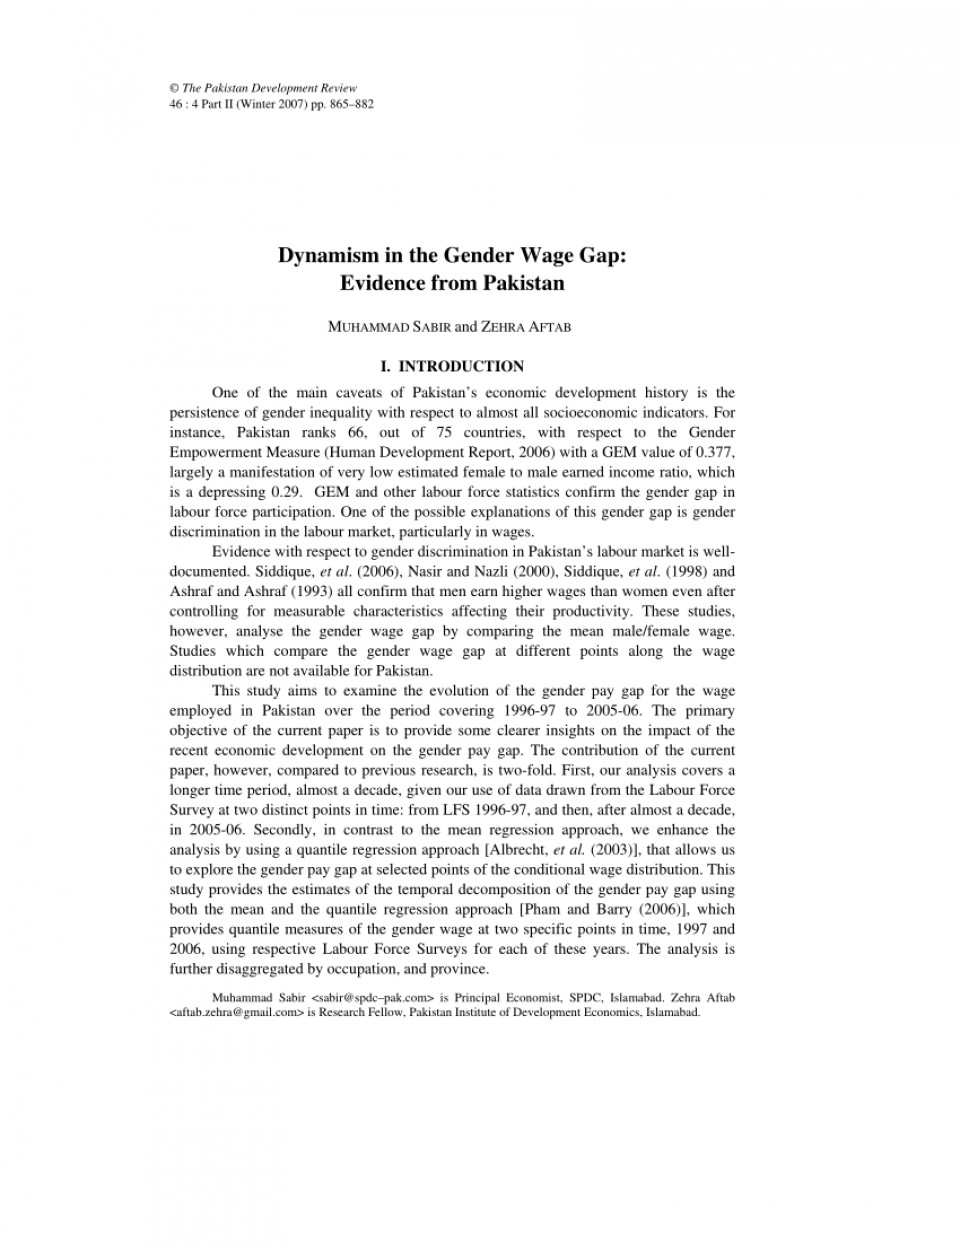 001 Pay Gap Research Paper Top Gender Wage Outline In India 960